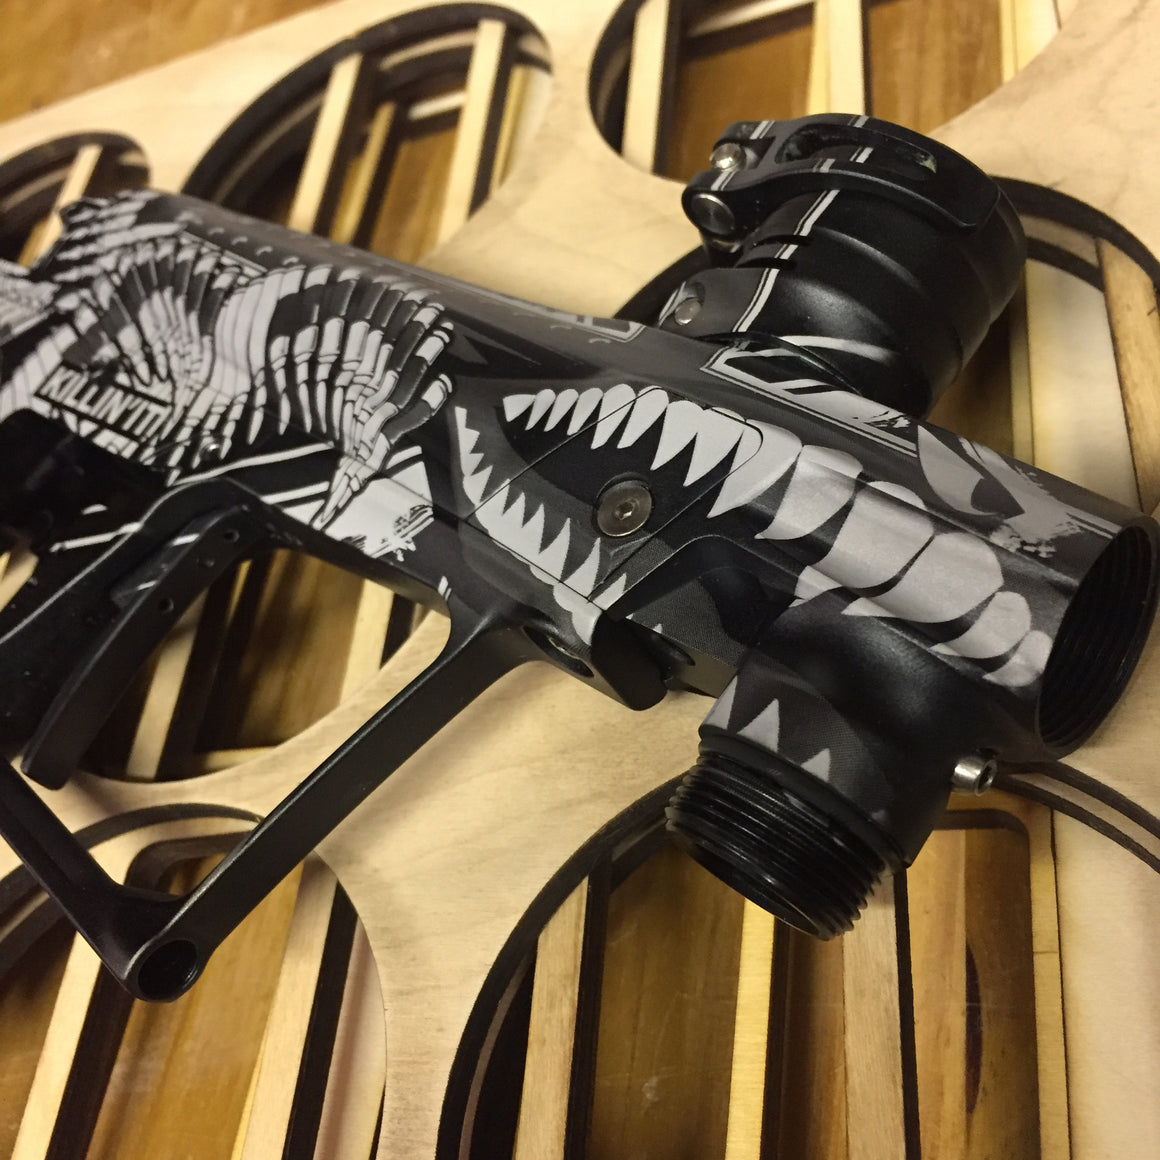 Spitfire Paintball Marker Design - GTEK Version